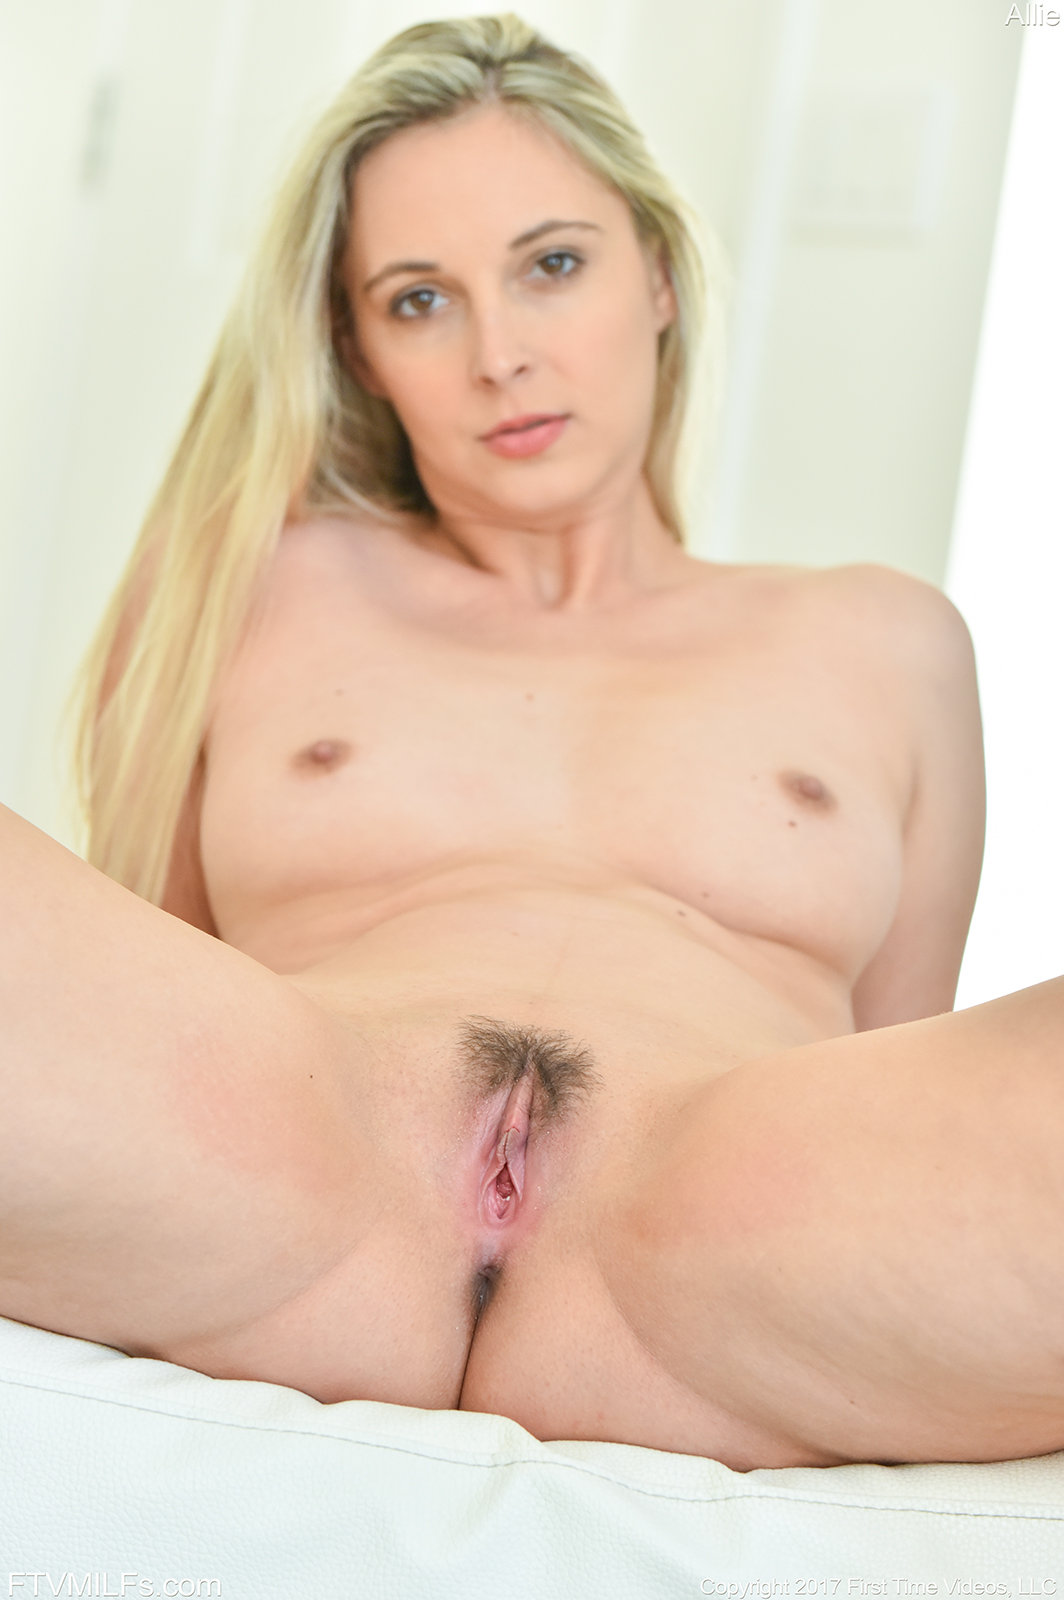 preview image pass  for ftvmilfs.com